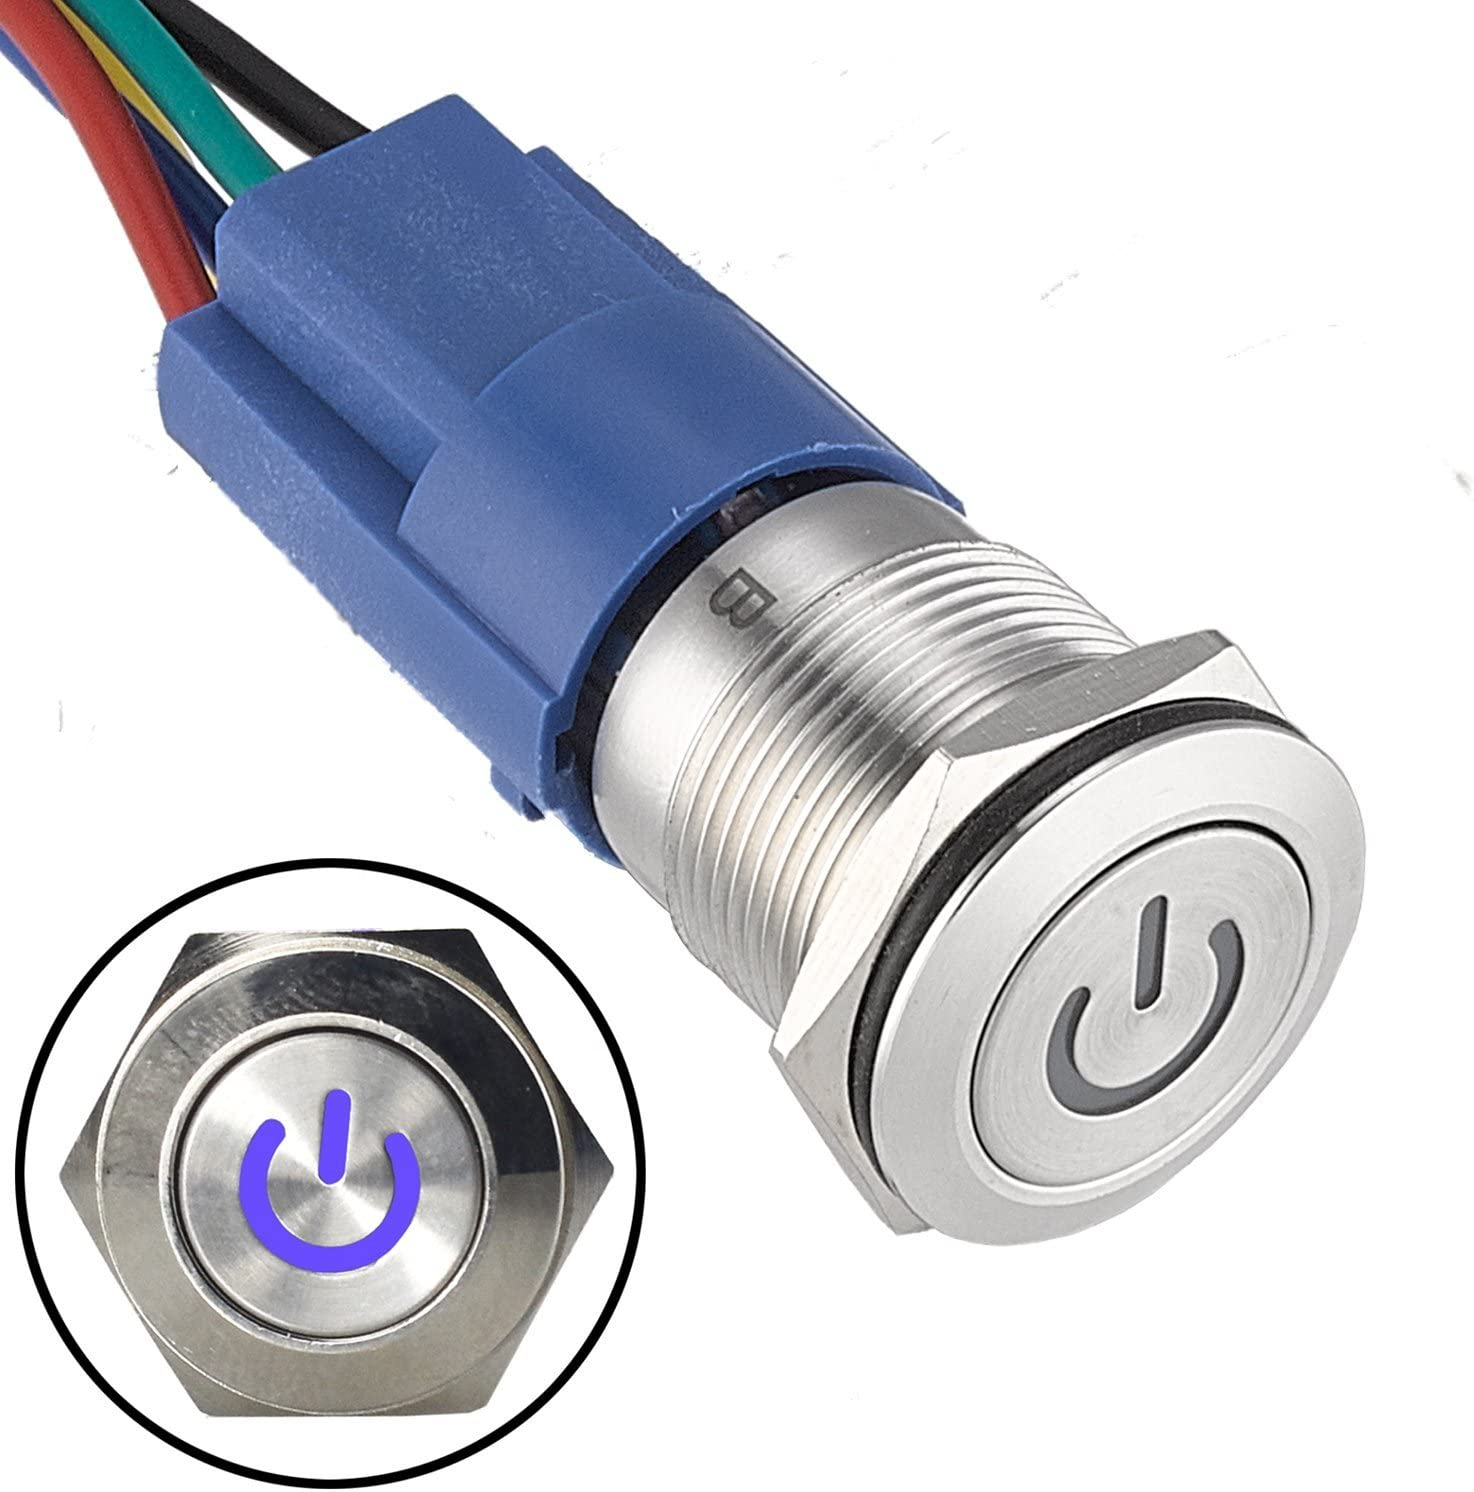 Linkstyle DC 12V 19mm Metal Latching Push Button Switch Waterproof Round Marine Button Switch with Red LED Light with Wire Socket Plug 4 Pin Car RV Truck Boat ON//OFF Switch